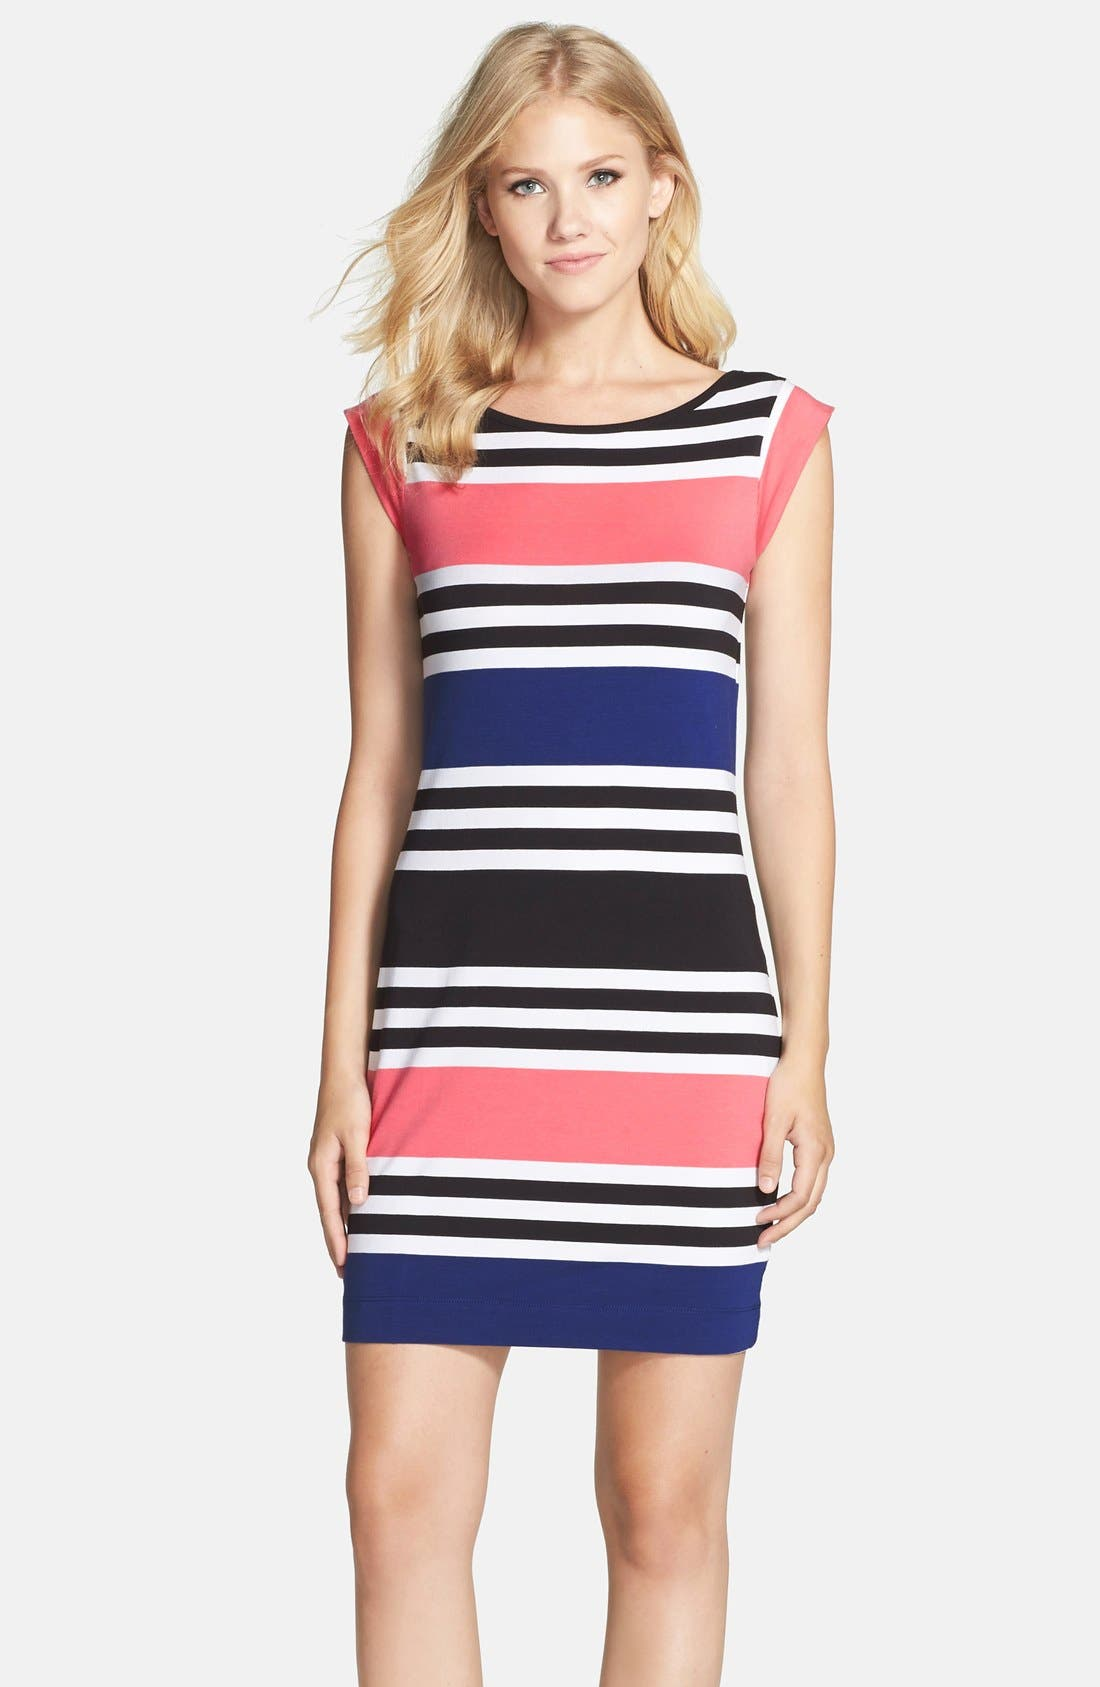 Alternate Image 1 Selected - French Connection 'Jag' Stripe Stretch Cotton Knit Dress